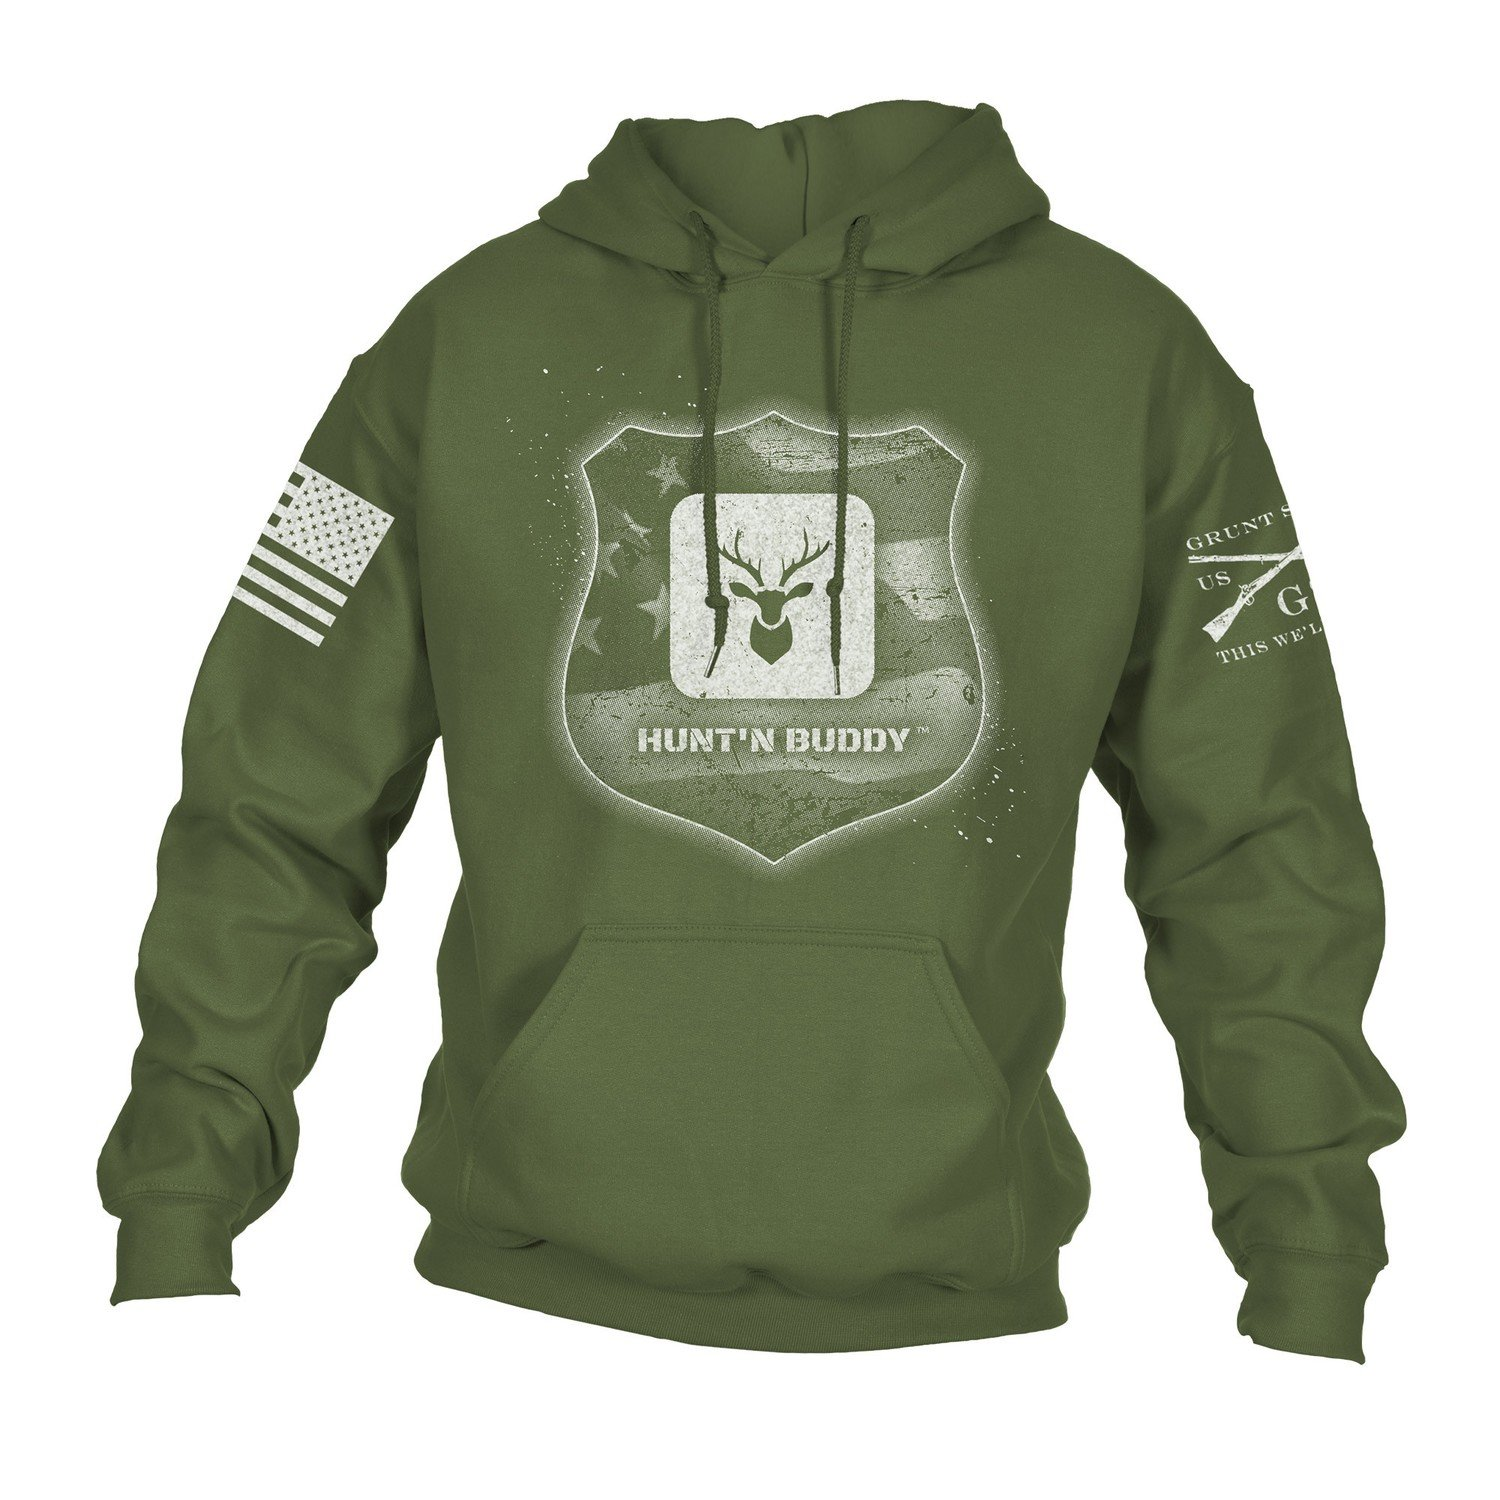 Grunt Style Back the Blue Support Hoodie